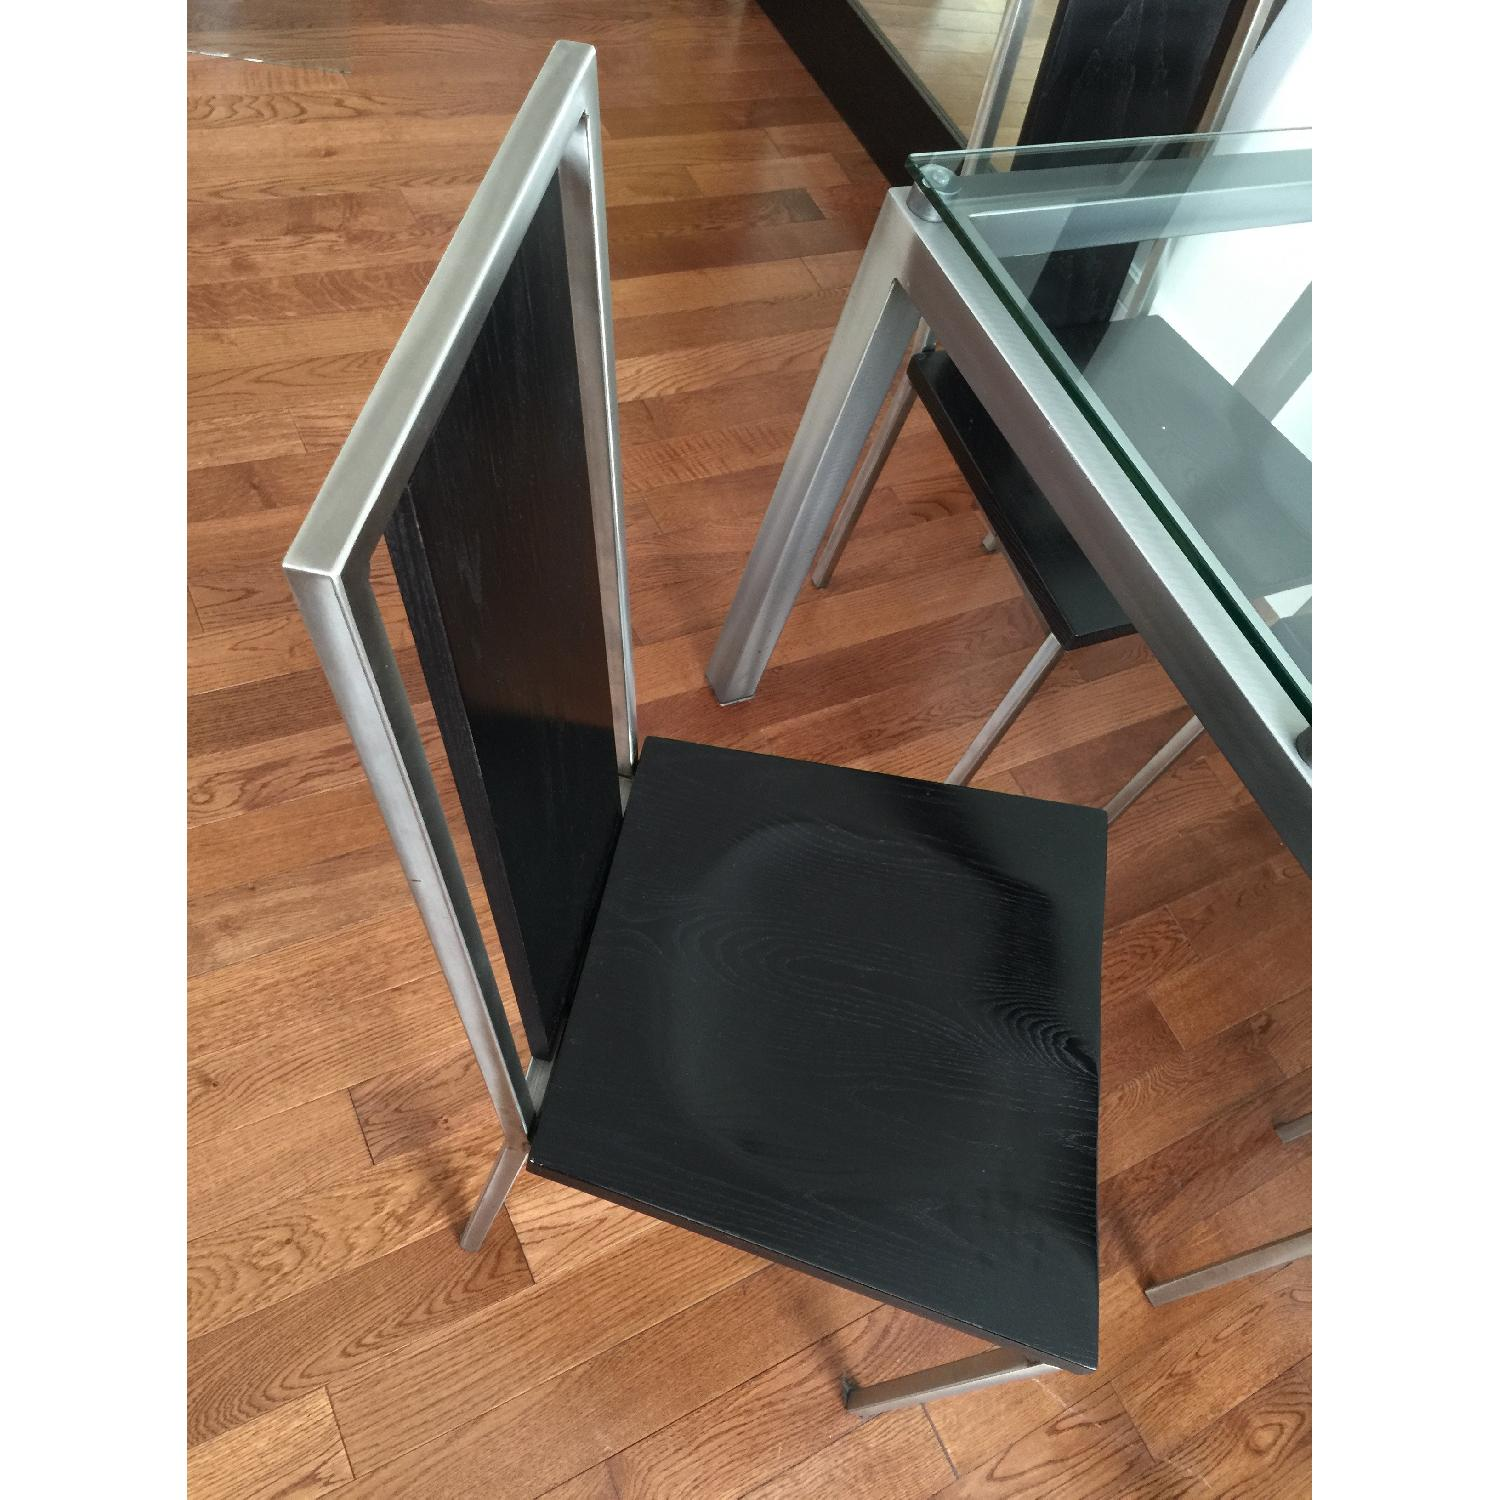 Glass Top/Stainless Base Parsons Table w/ 4 Black Ash Wood Chairs - image-2